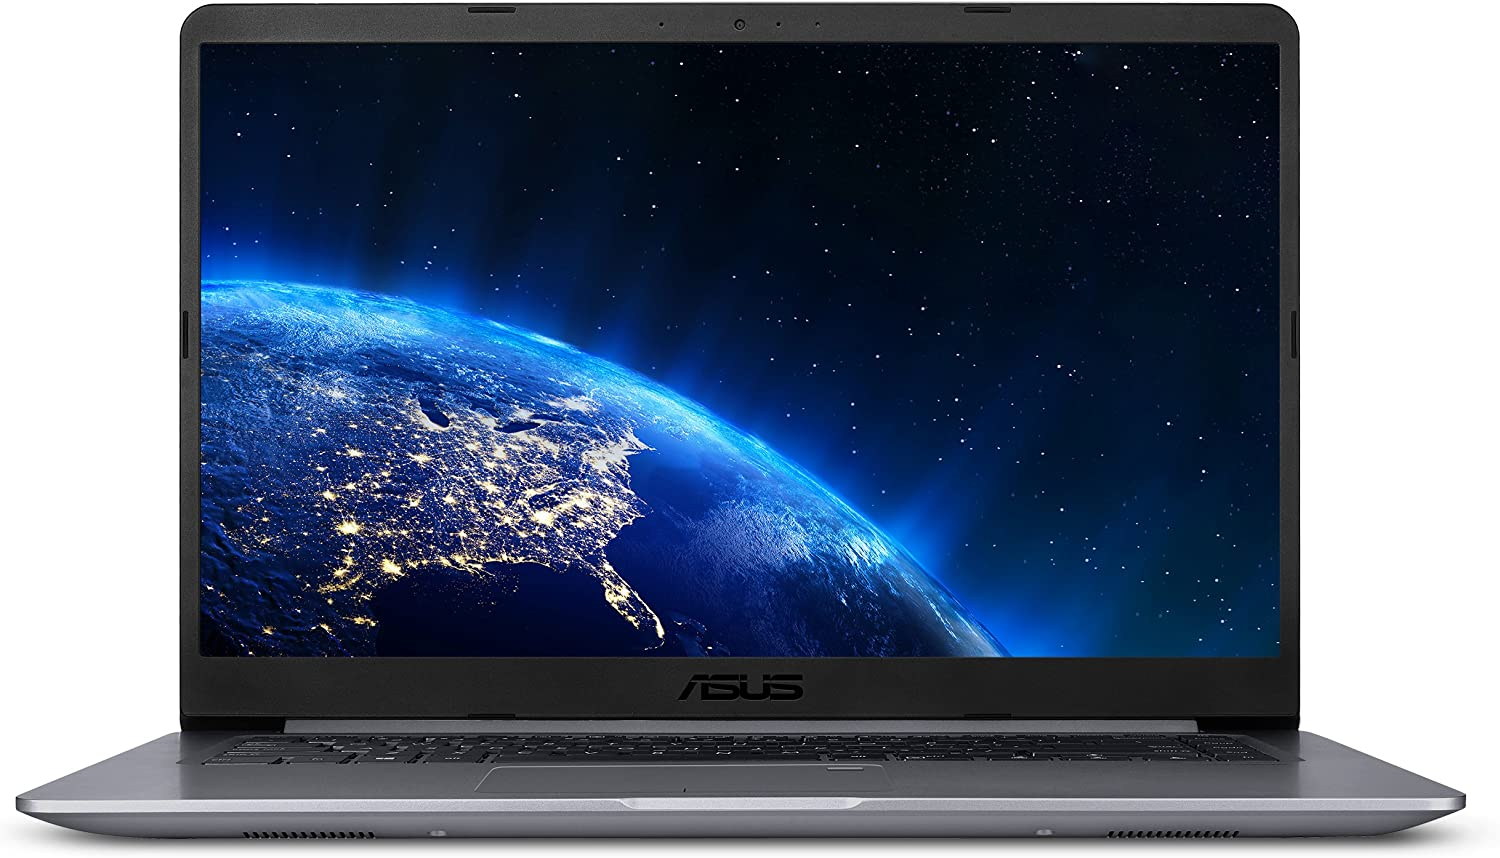 ASUS VivoBook FHD, 8th Gen Intel Core i5-8250U, 8GB DDR4 RAM, 128GB SSD+1TB HDD